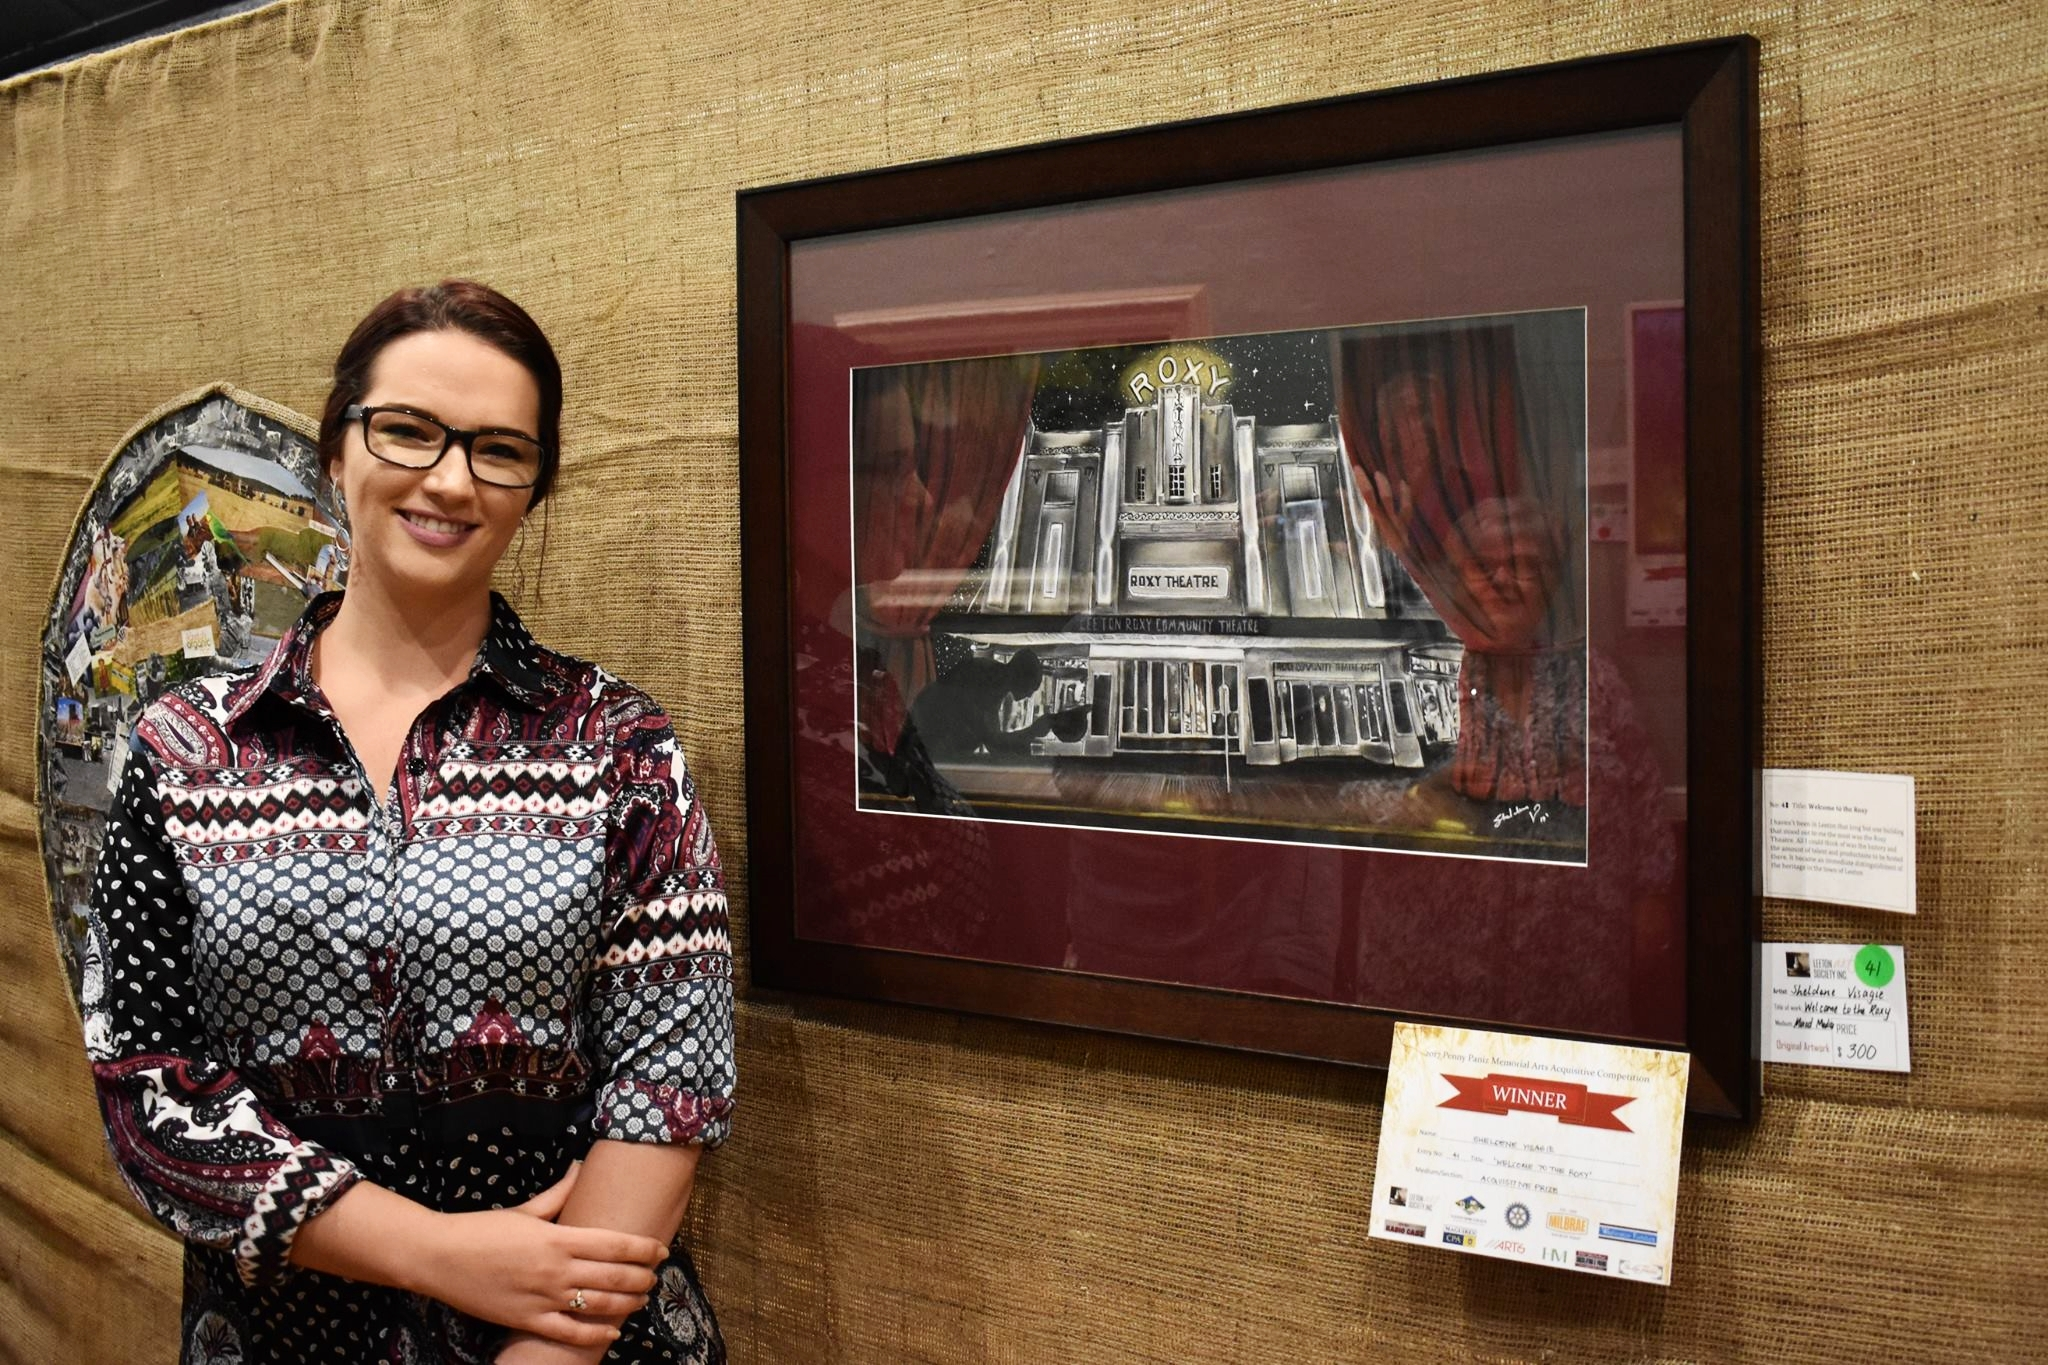 Winner 'Arts Acquisitive Prize' Sheldene Visagie with her artwork 'Welcome to the ROXY'